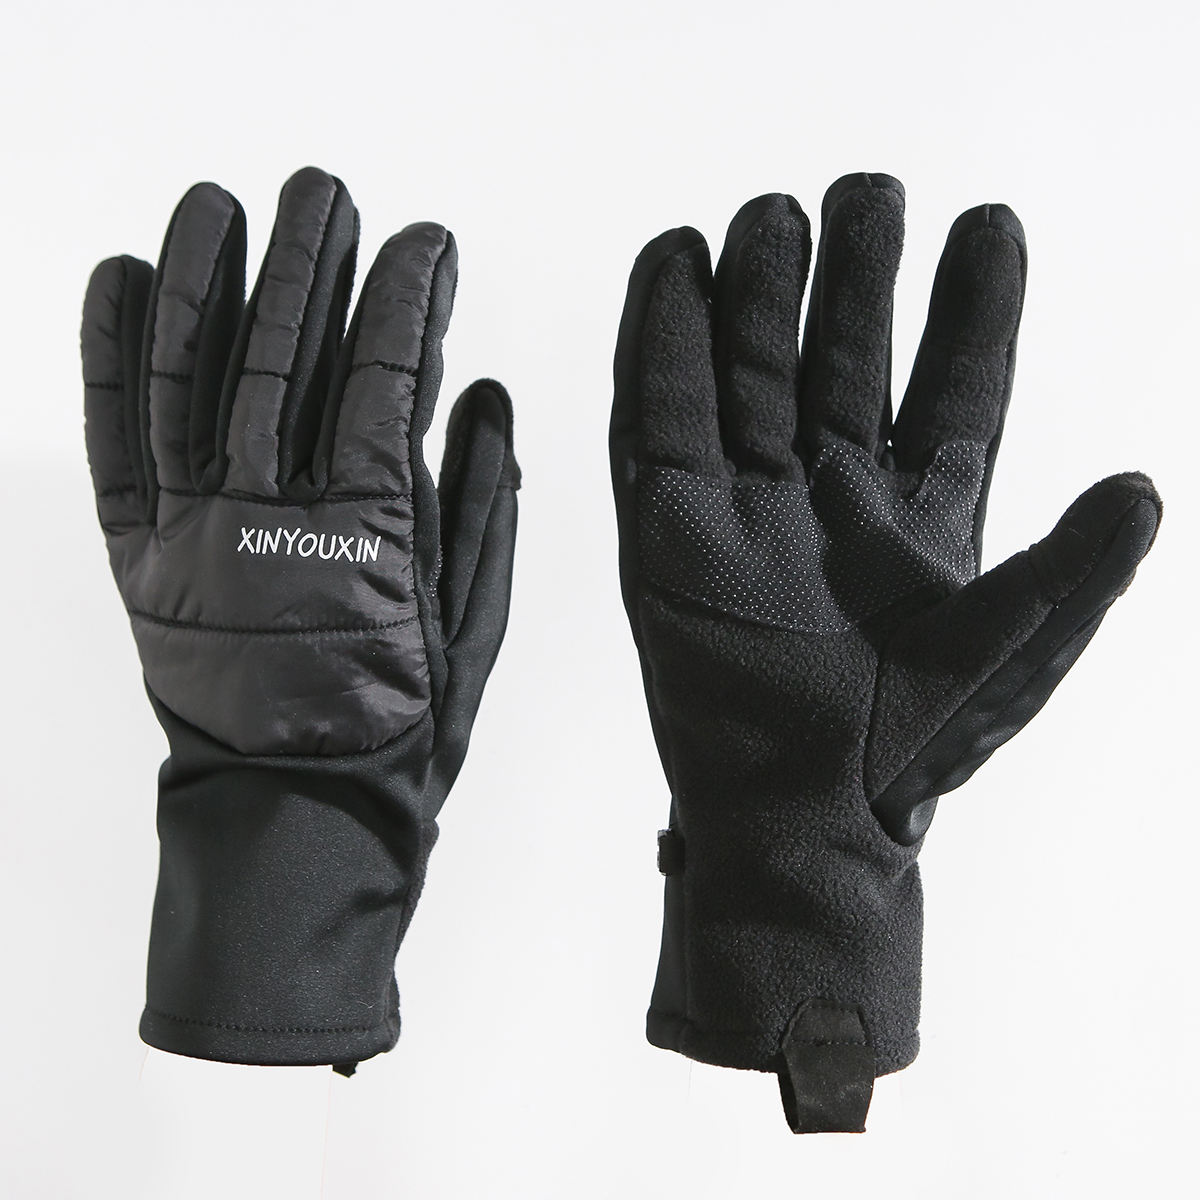 manufacturers fashion winter gloves black custom logo long mittens warm gloves